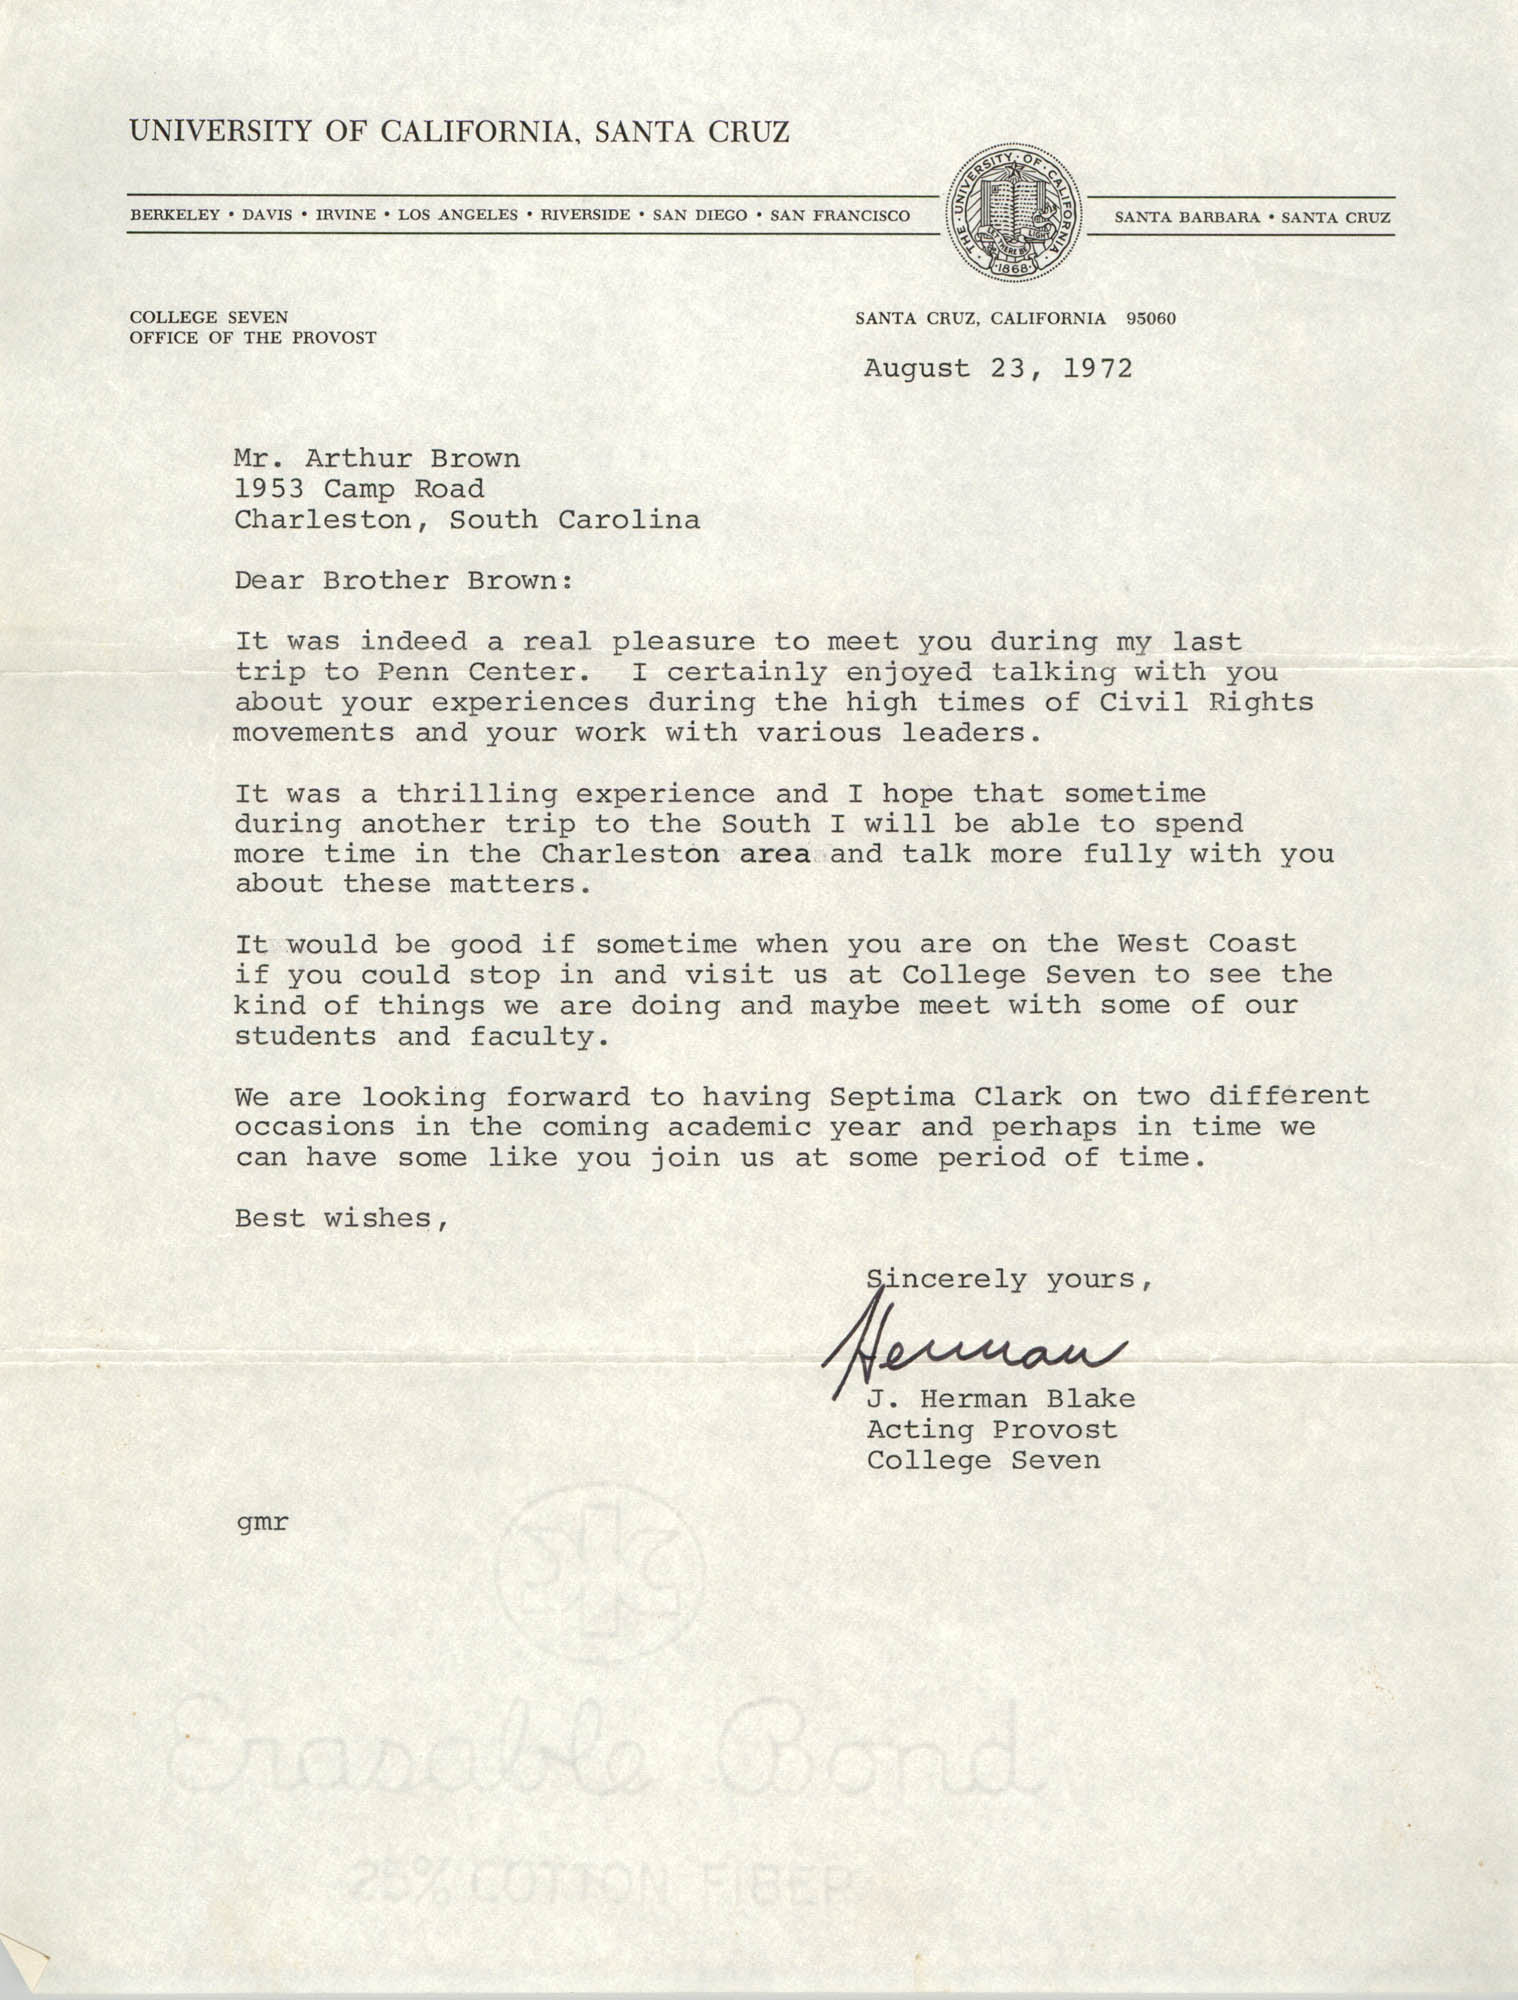 Letter from J. Herman Blake to J. Arthur Brown, August 23, 1972